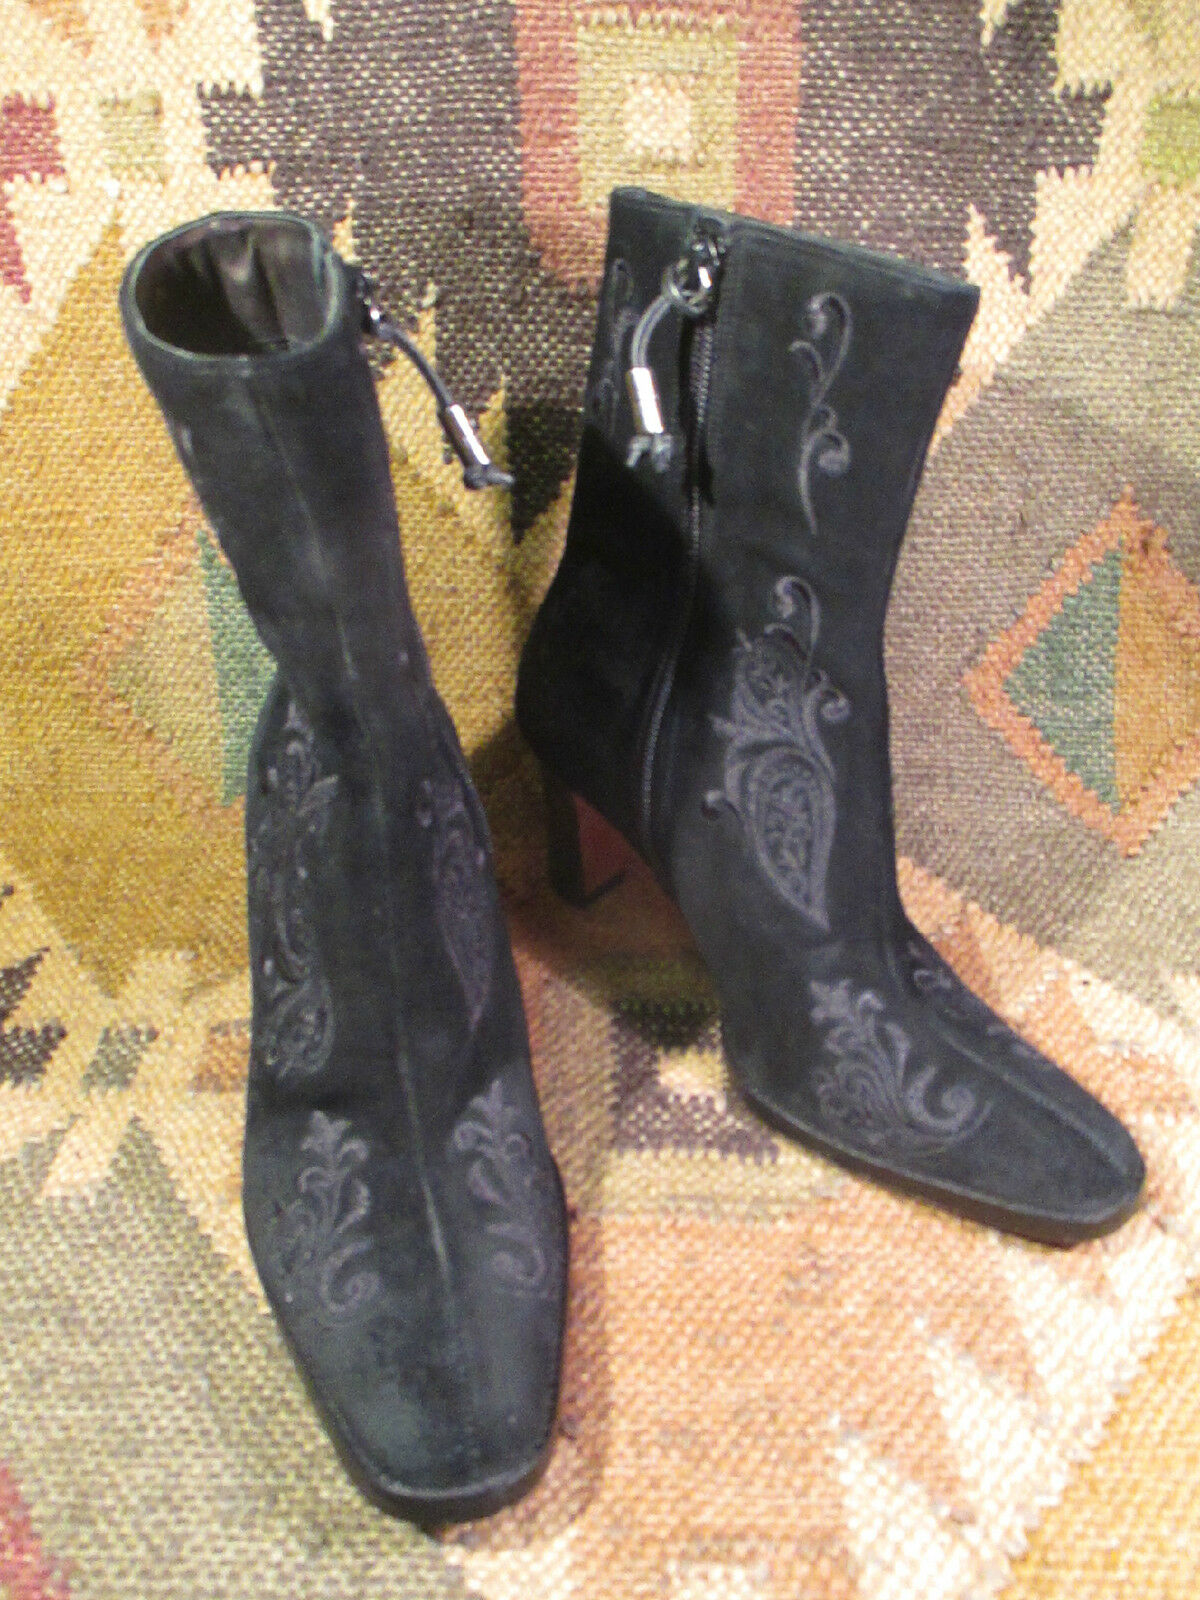 RALPH LAUREN CORINA EMBROIDERY BLACK SUEDE ANKLE BOOTS  Größe 5B made in BRAZIL